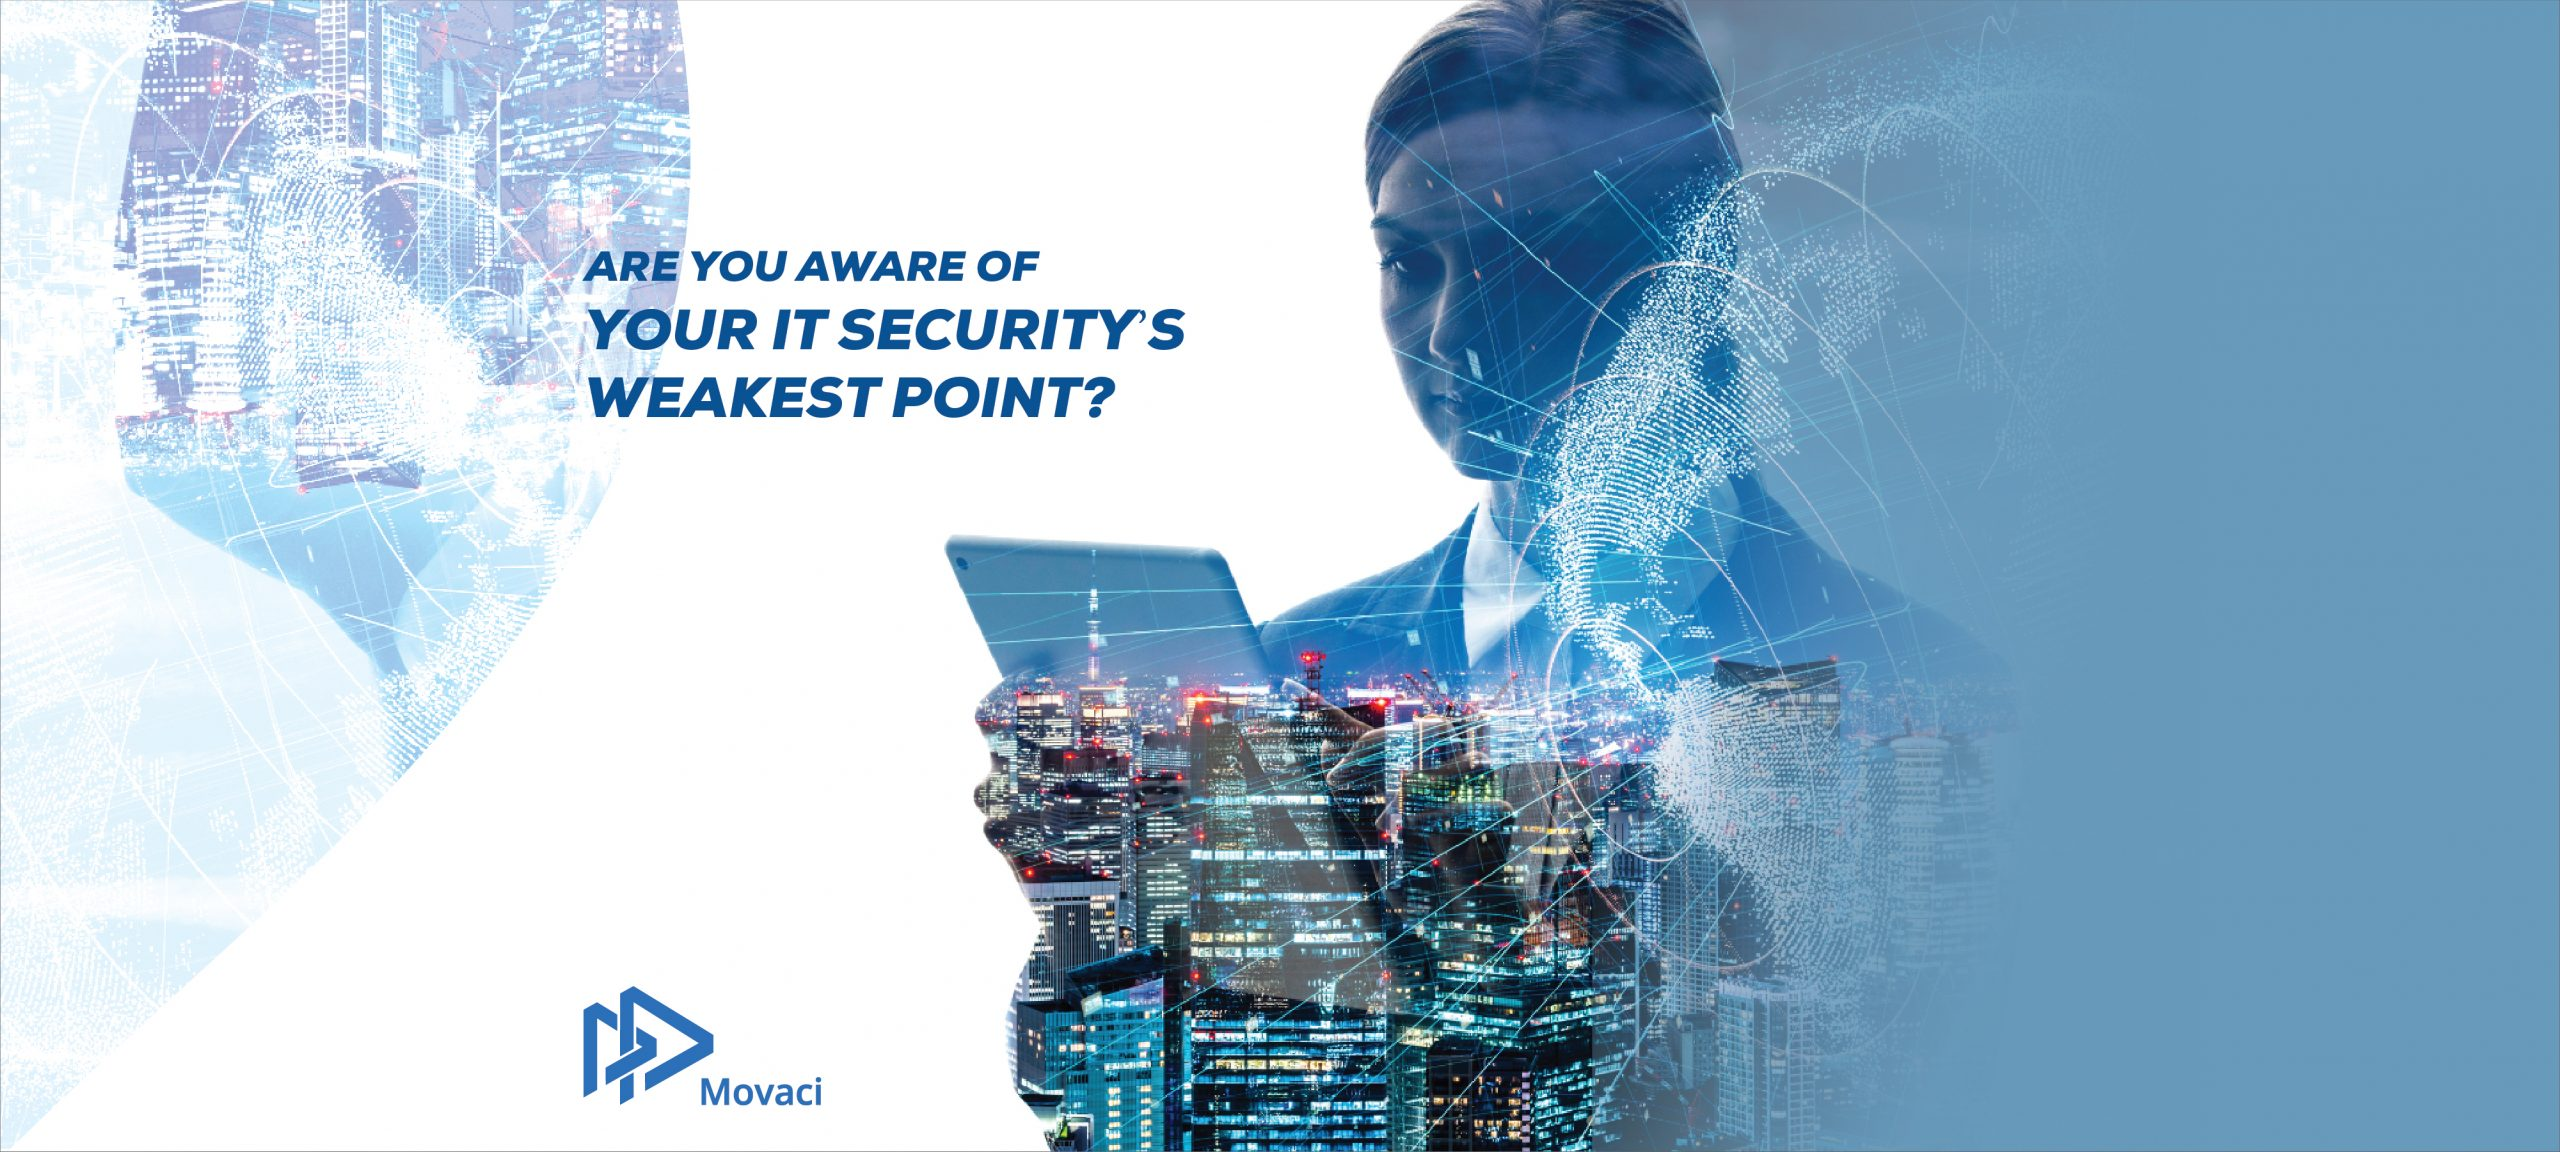 ARE YOU AWARE OF YOUR IT SECURITY'S WEAKEST POINT? 1